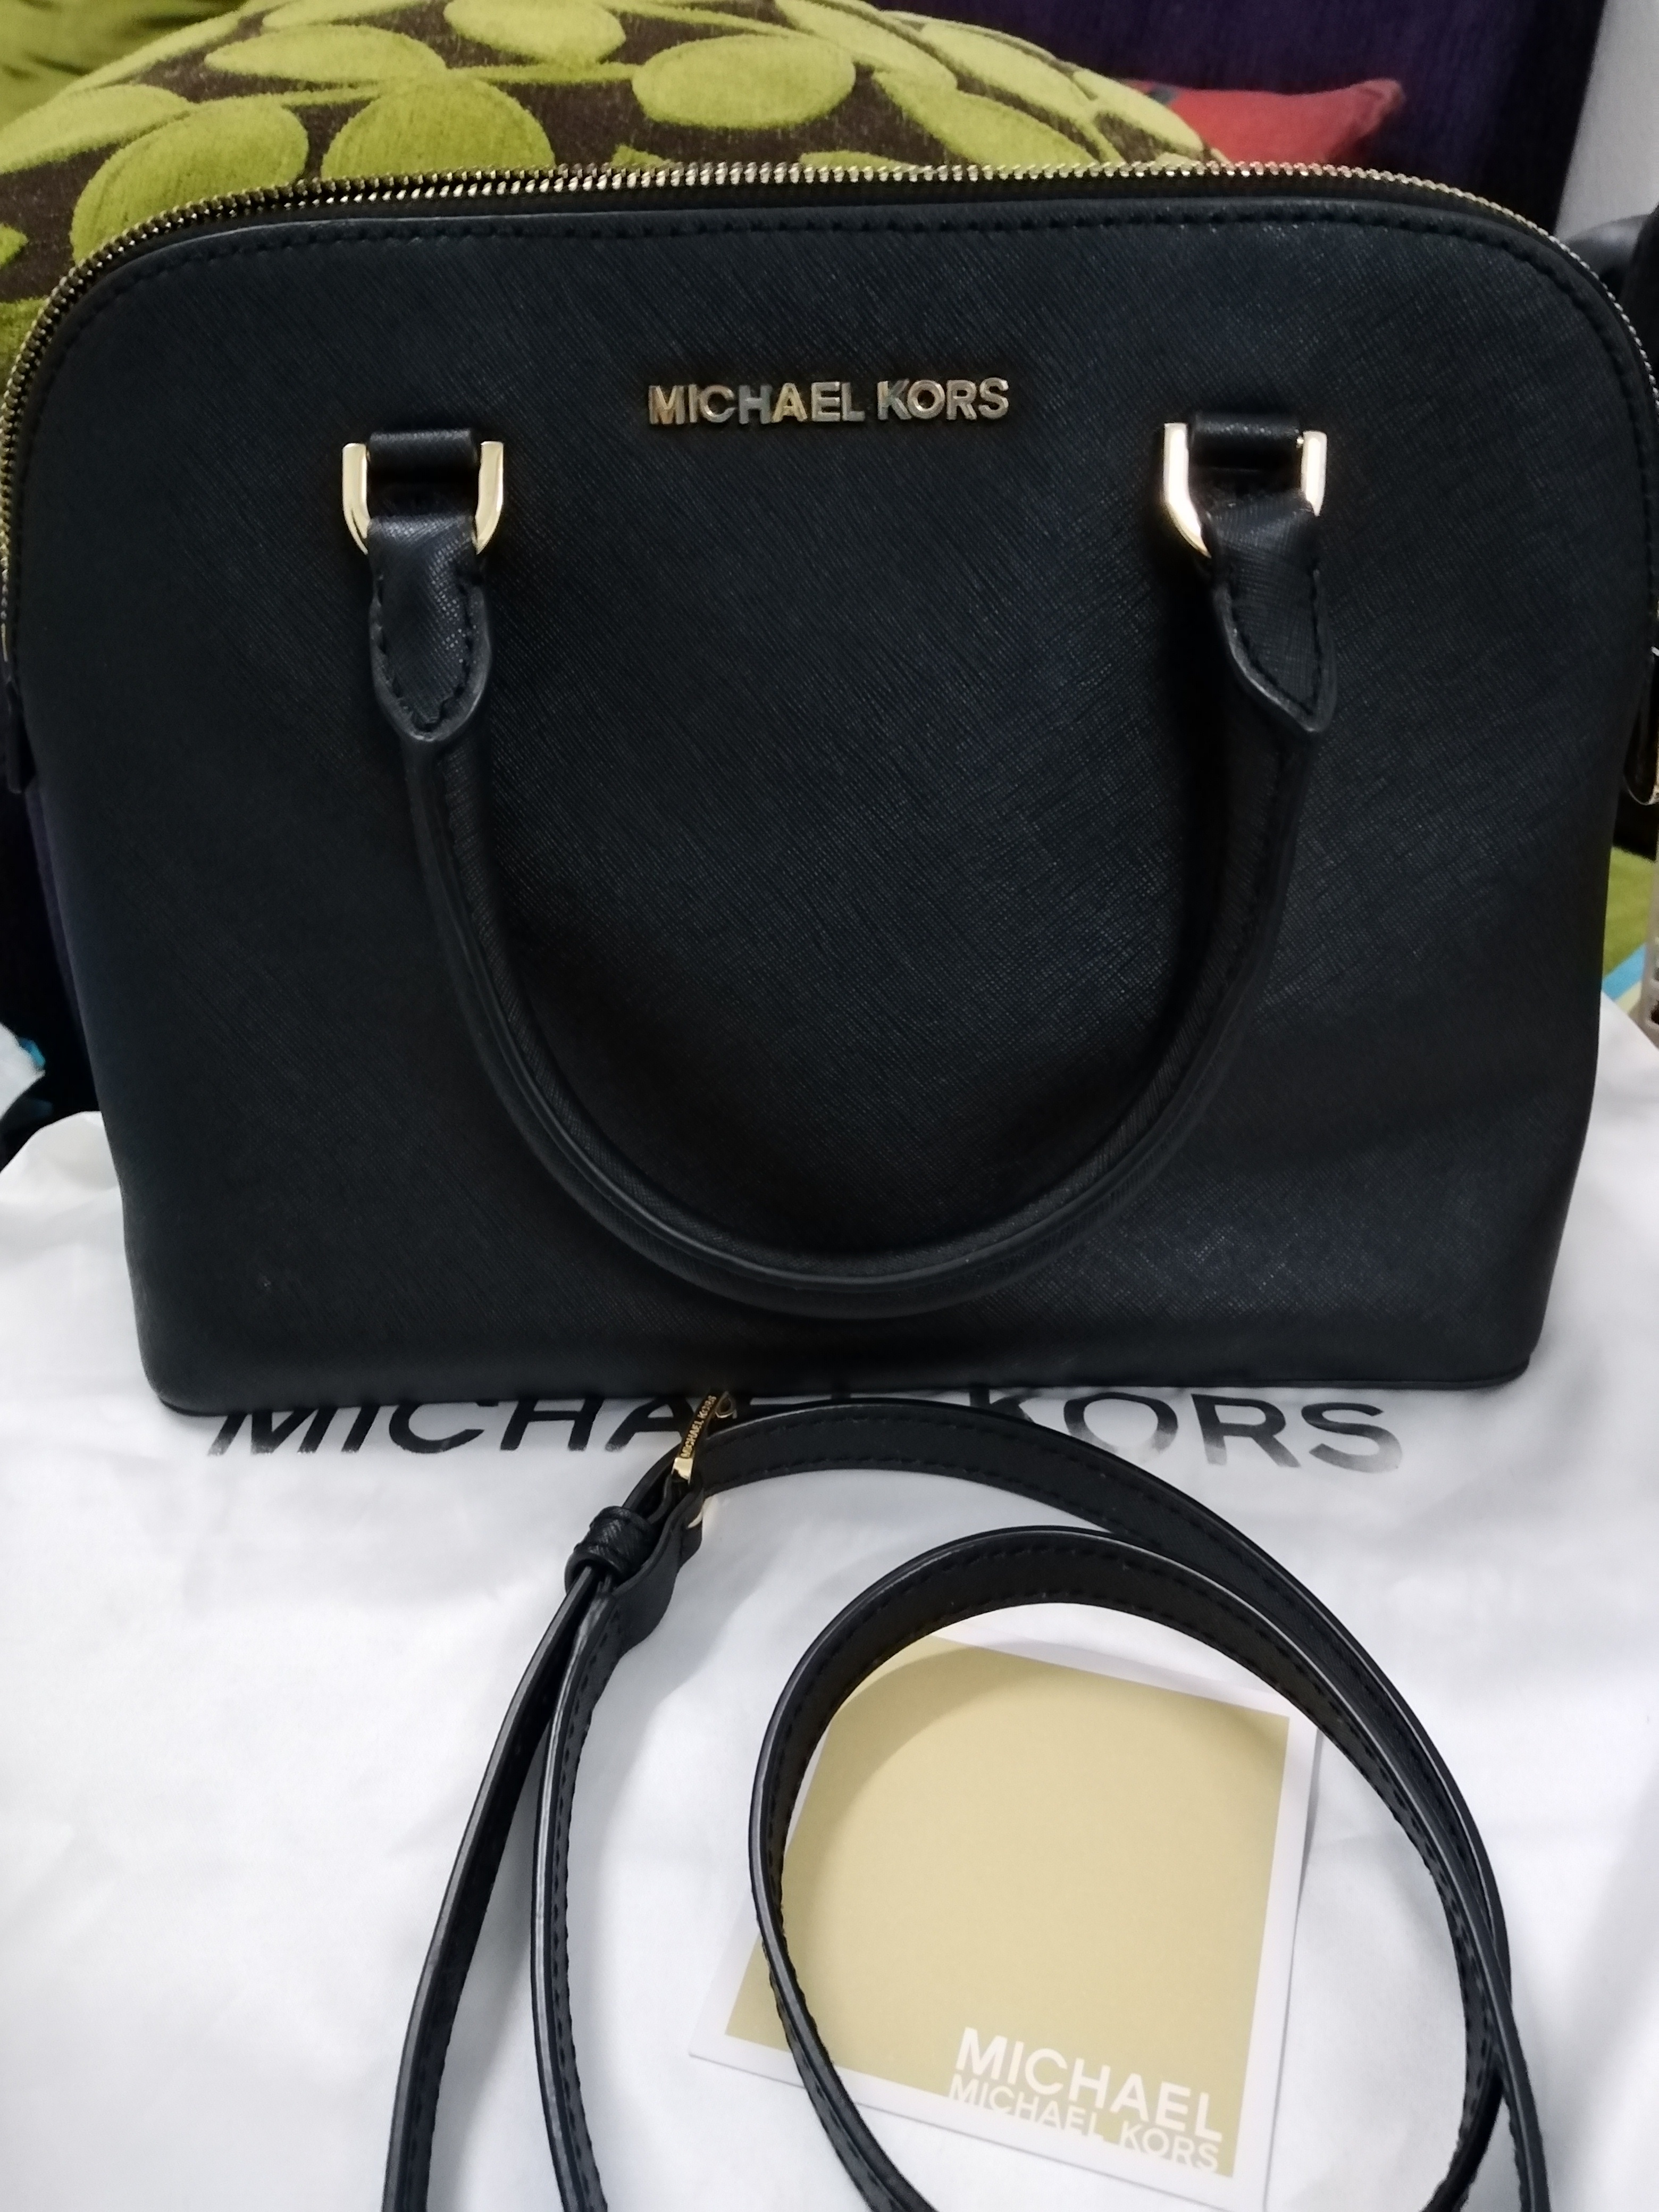 a47154f4756f Michael Kors Bag Measurements : Similar to coach sierra medium. Condition :  7/10 Color/Material : Navy blue Bought in KLIA in 2016 RM1200+. Sign of used.  ...